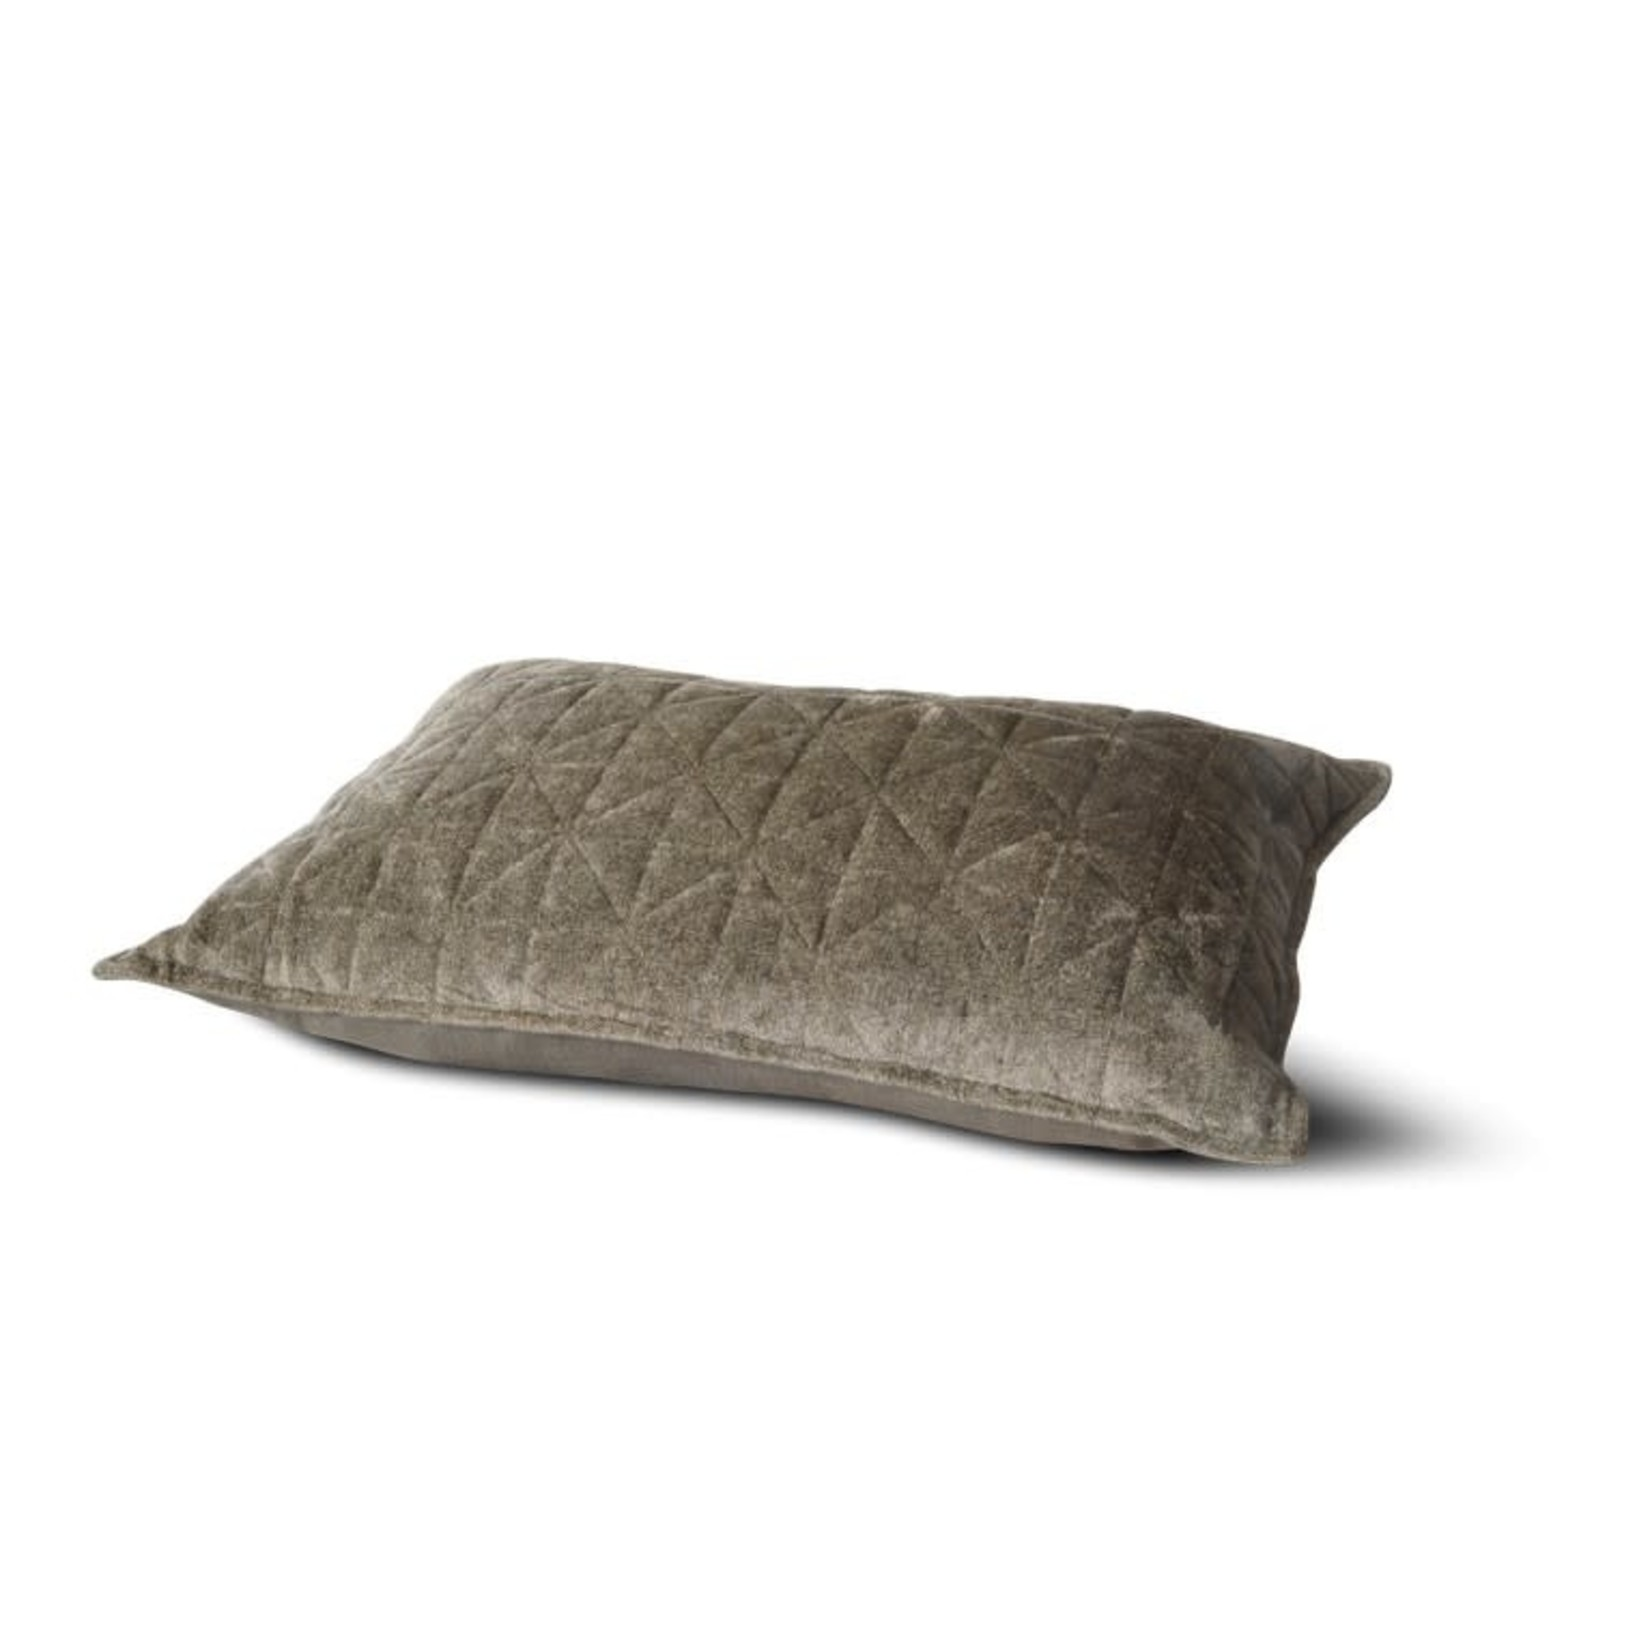 Brynxz Cushion viscose chenille quilted Green  40x60cm